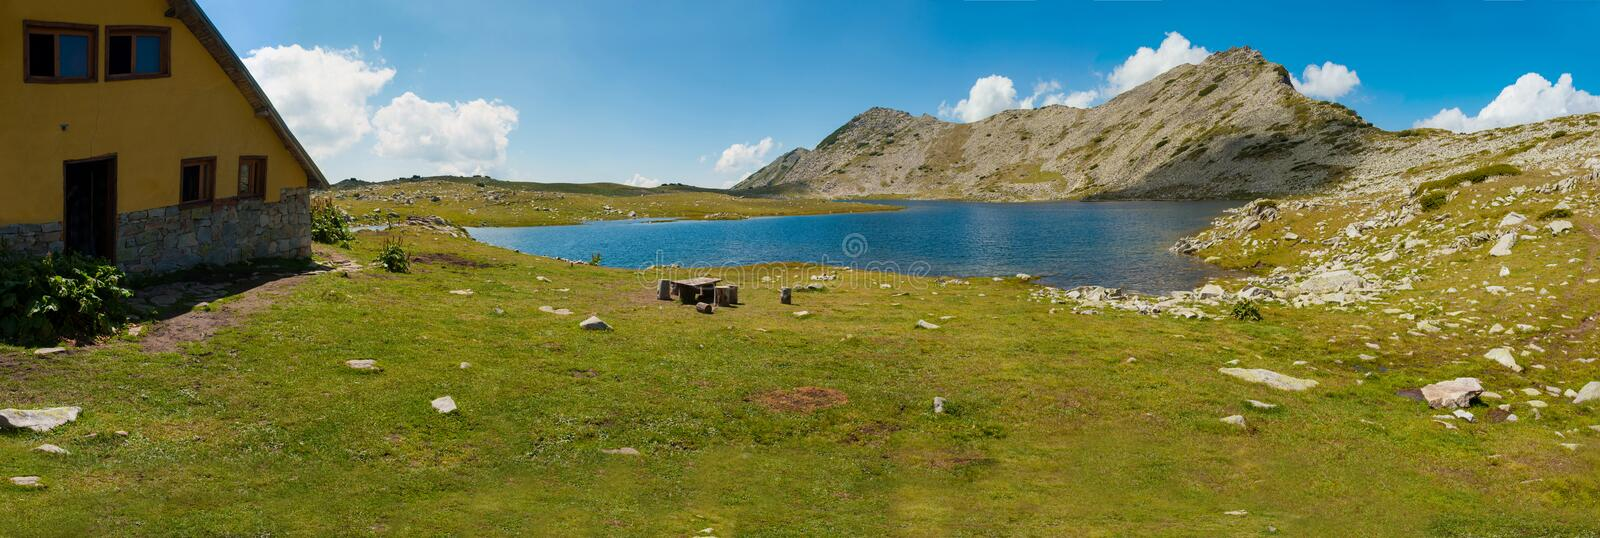 Tevno Lake Panorama royalty free stock images